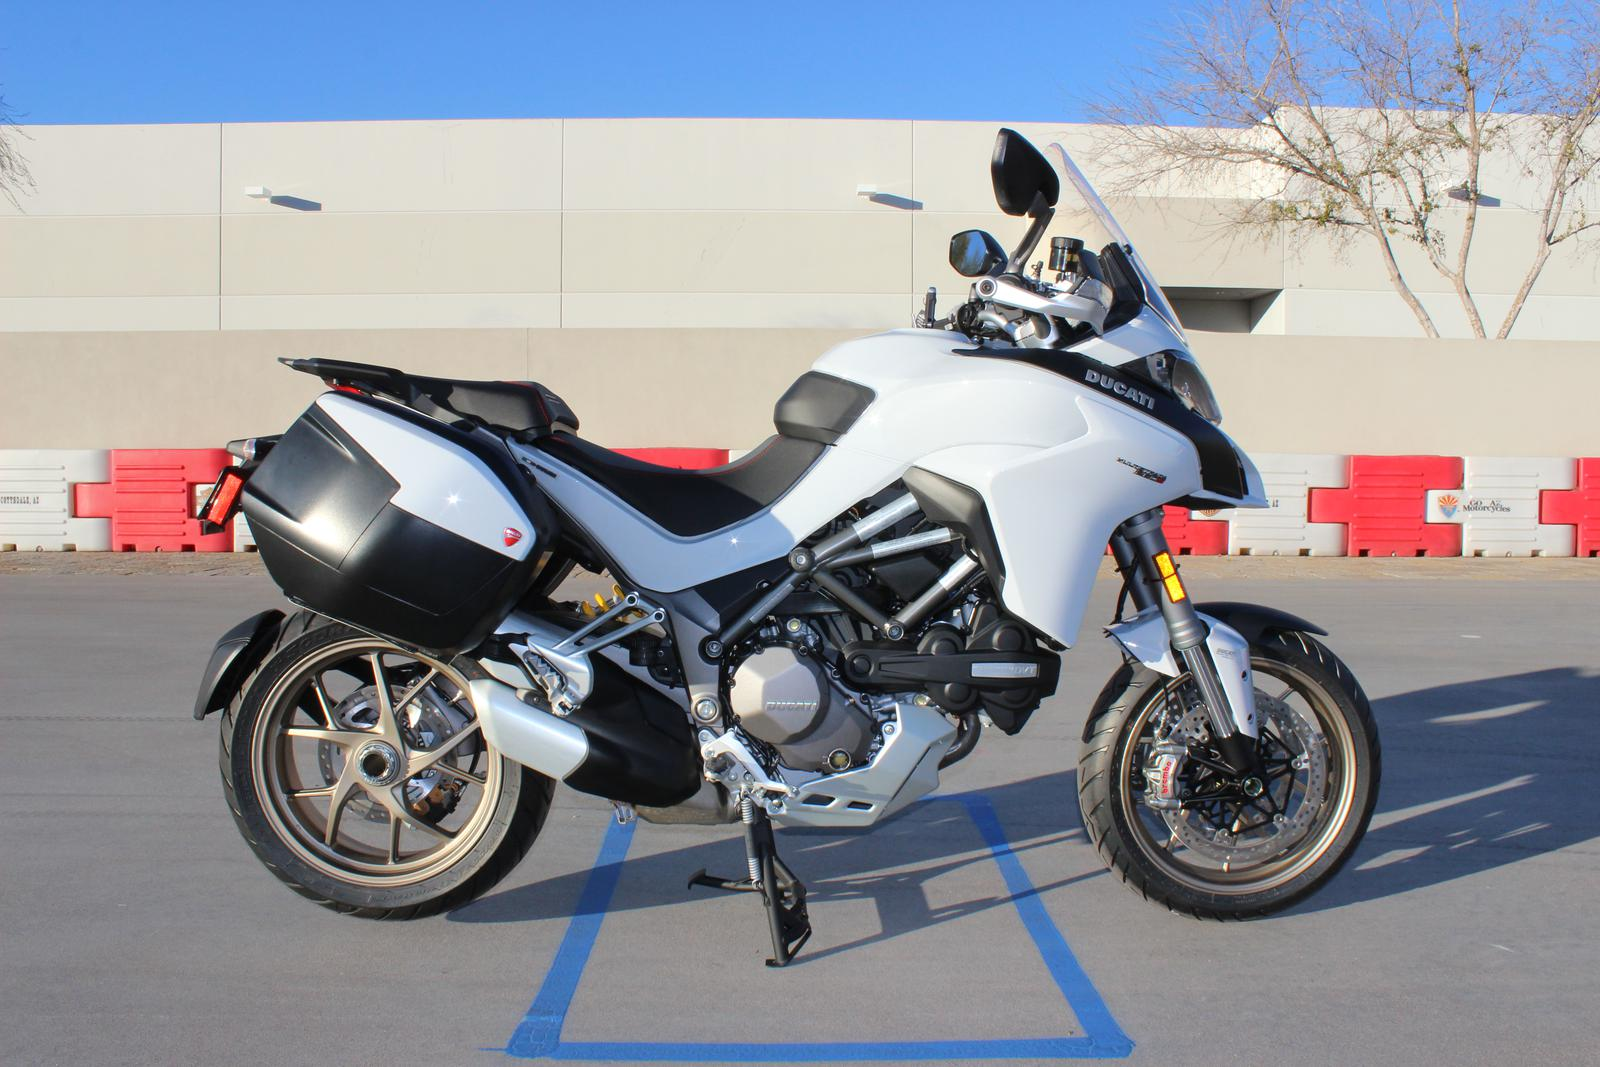 Terrific 2019 Ducati Multistrada 1260 Tour For Sale In Scottsdale Az Caraccident5 Cool Chair Designs And Ideas Caraccident5Info